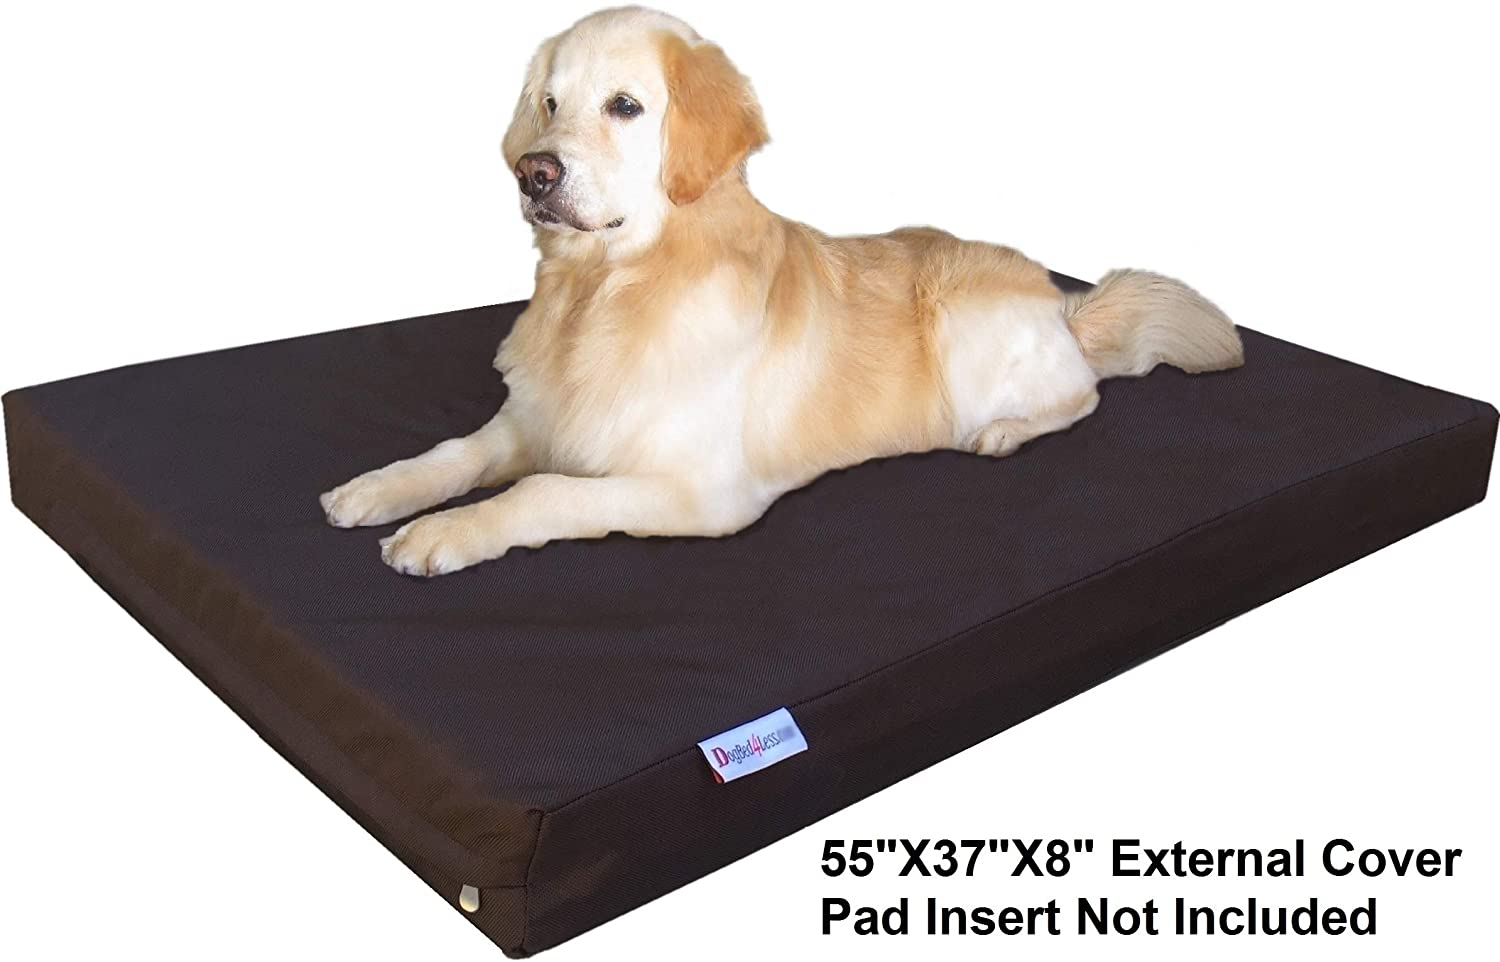 Seal Brown Replacement Cover Only Dogbed4less Jumbo 1680 Nylon Heavy Duty Dog Pet Bed External Zipper Duvet Cover and Waterproof Internal Cover 55X37X8 Inches